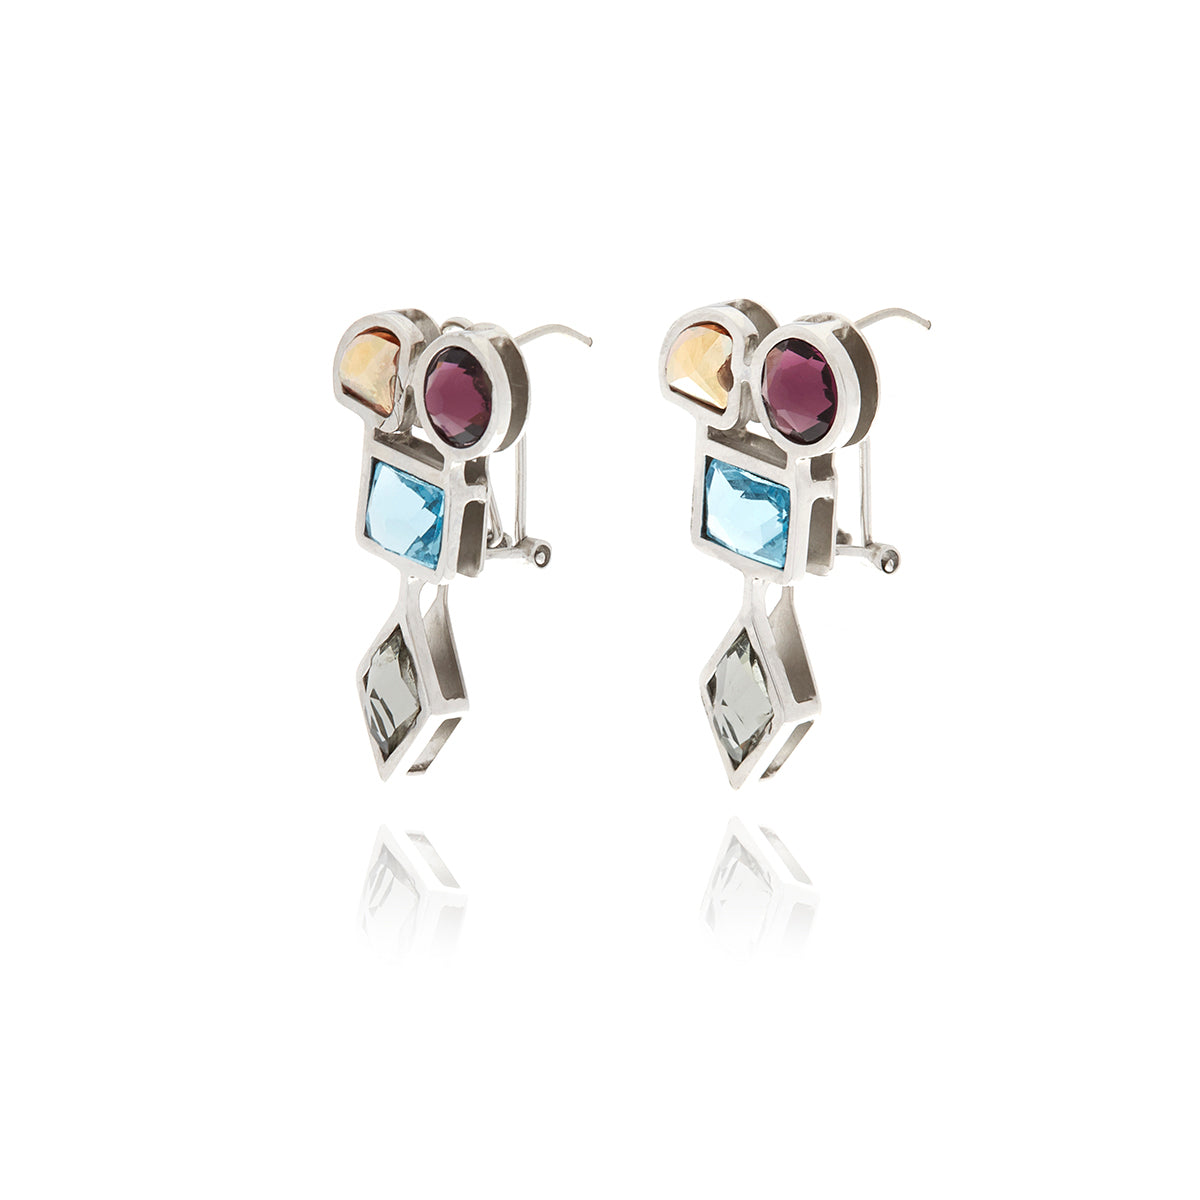 Luxe Silver Earrings - Georgina Jewelry